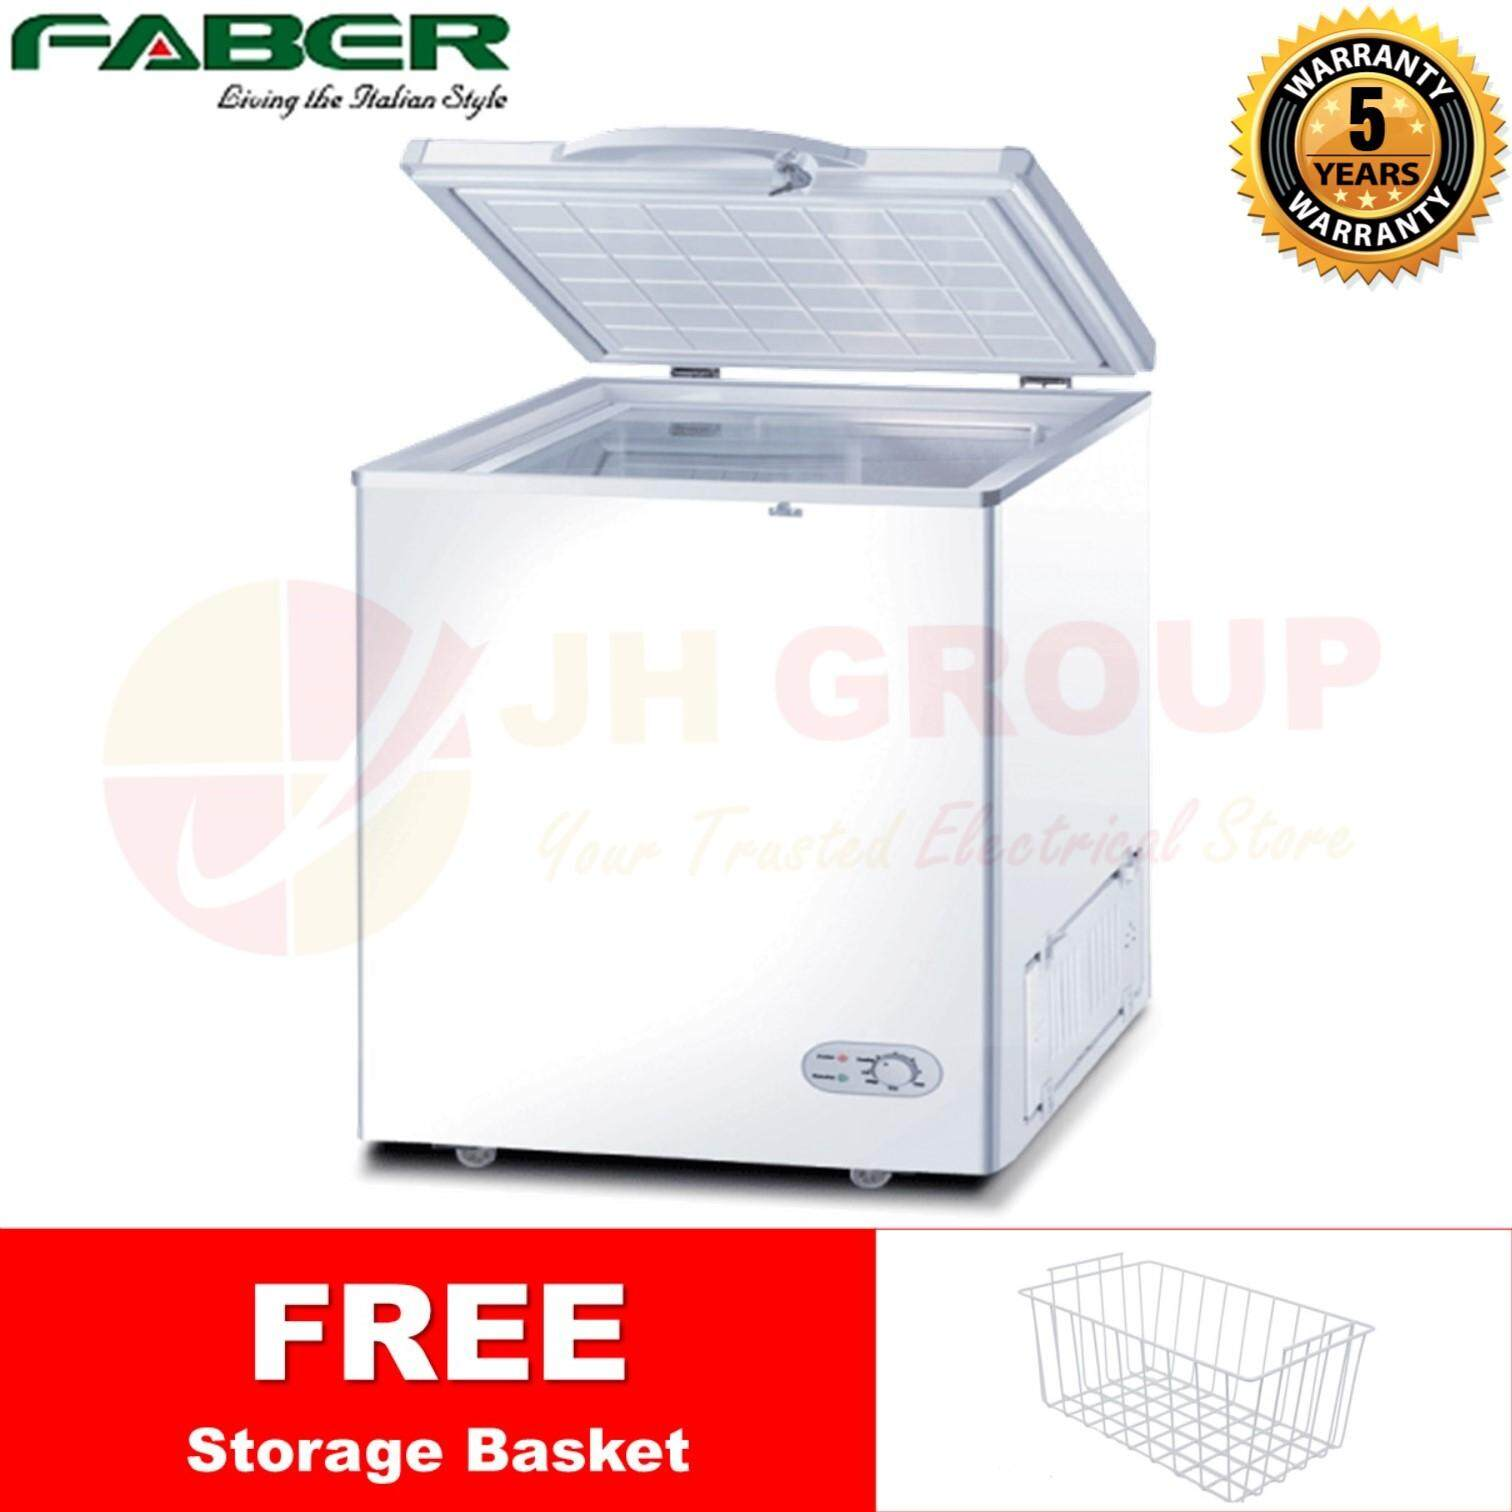 (AUTHORISED DEALER) FABER FZ-F228(N) 200L DUO FUNCTION CHEST FREEZER / FRIDGE REFRIGERATOR